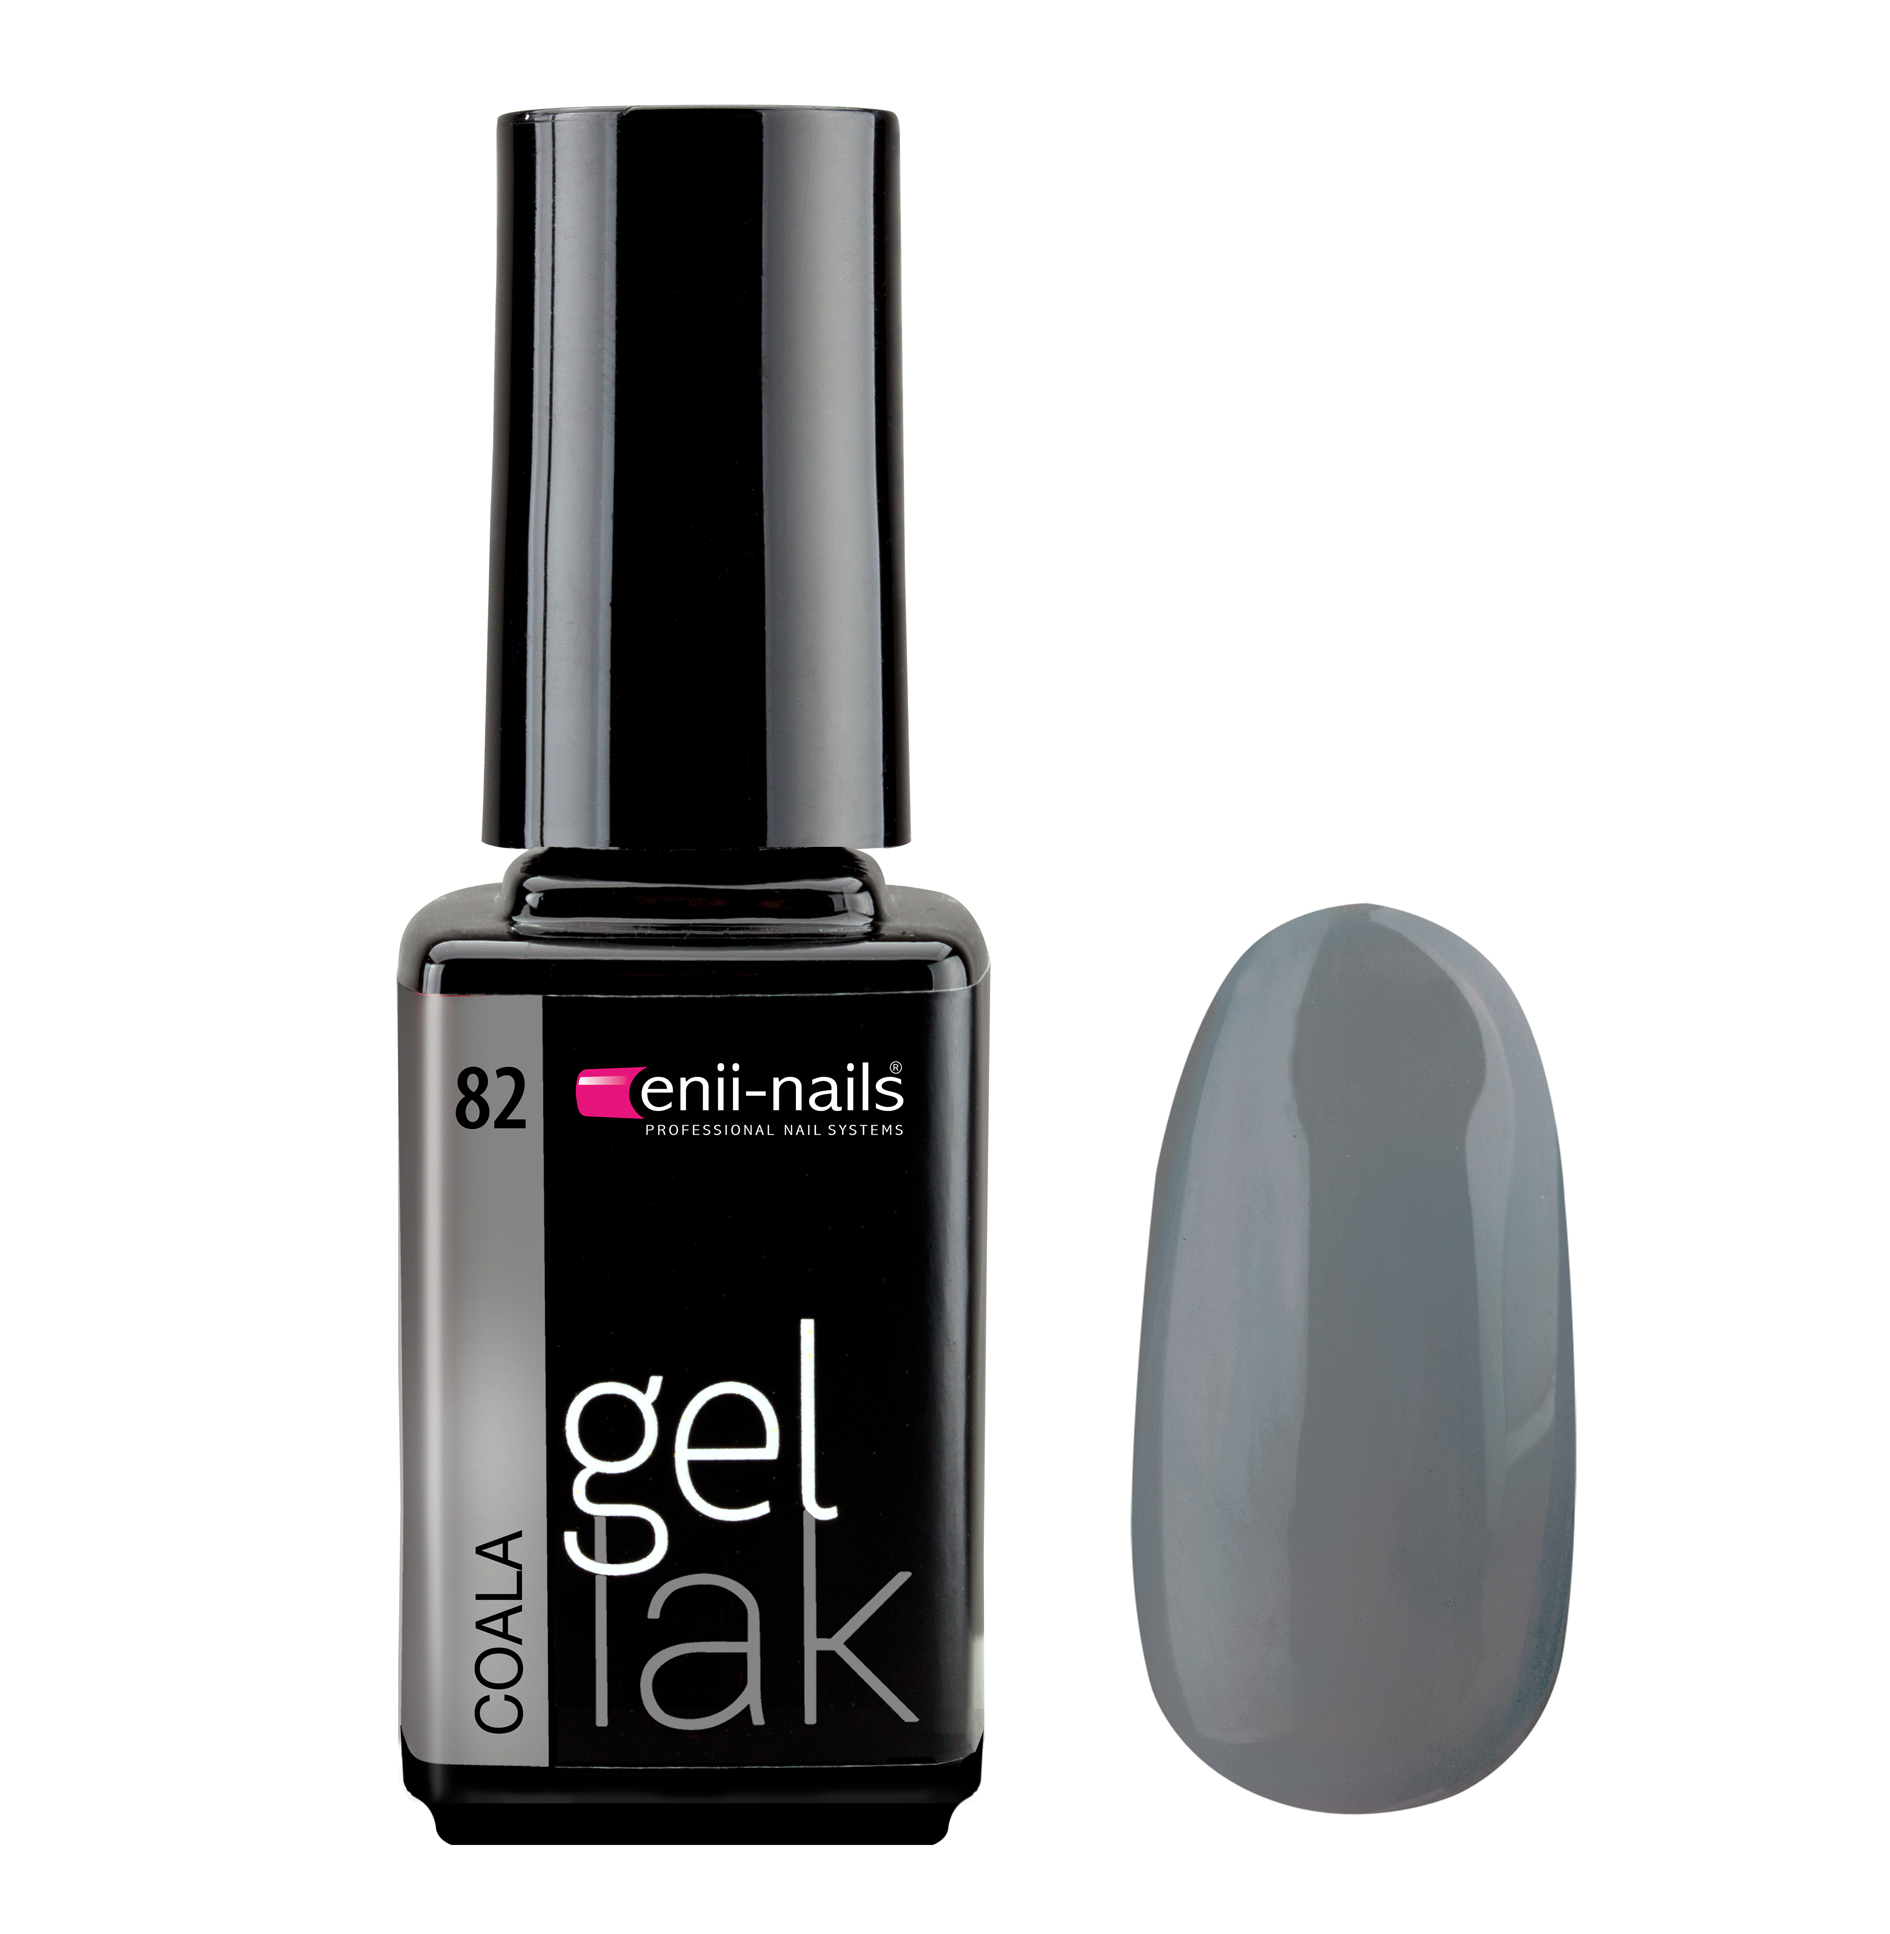 ENII-NAILS Gel lak Coala 5 ml